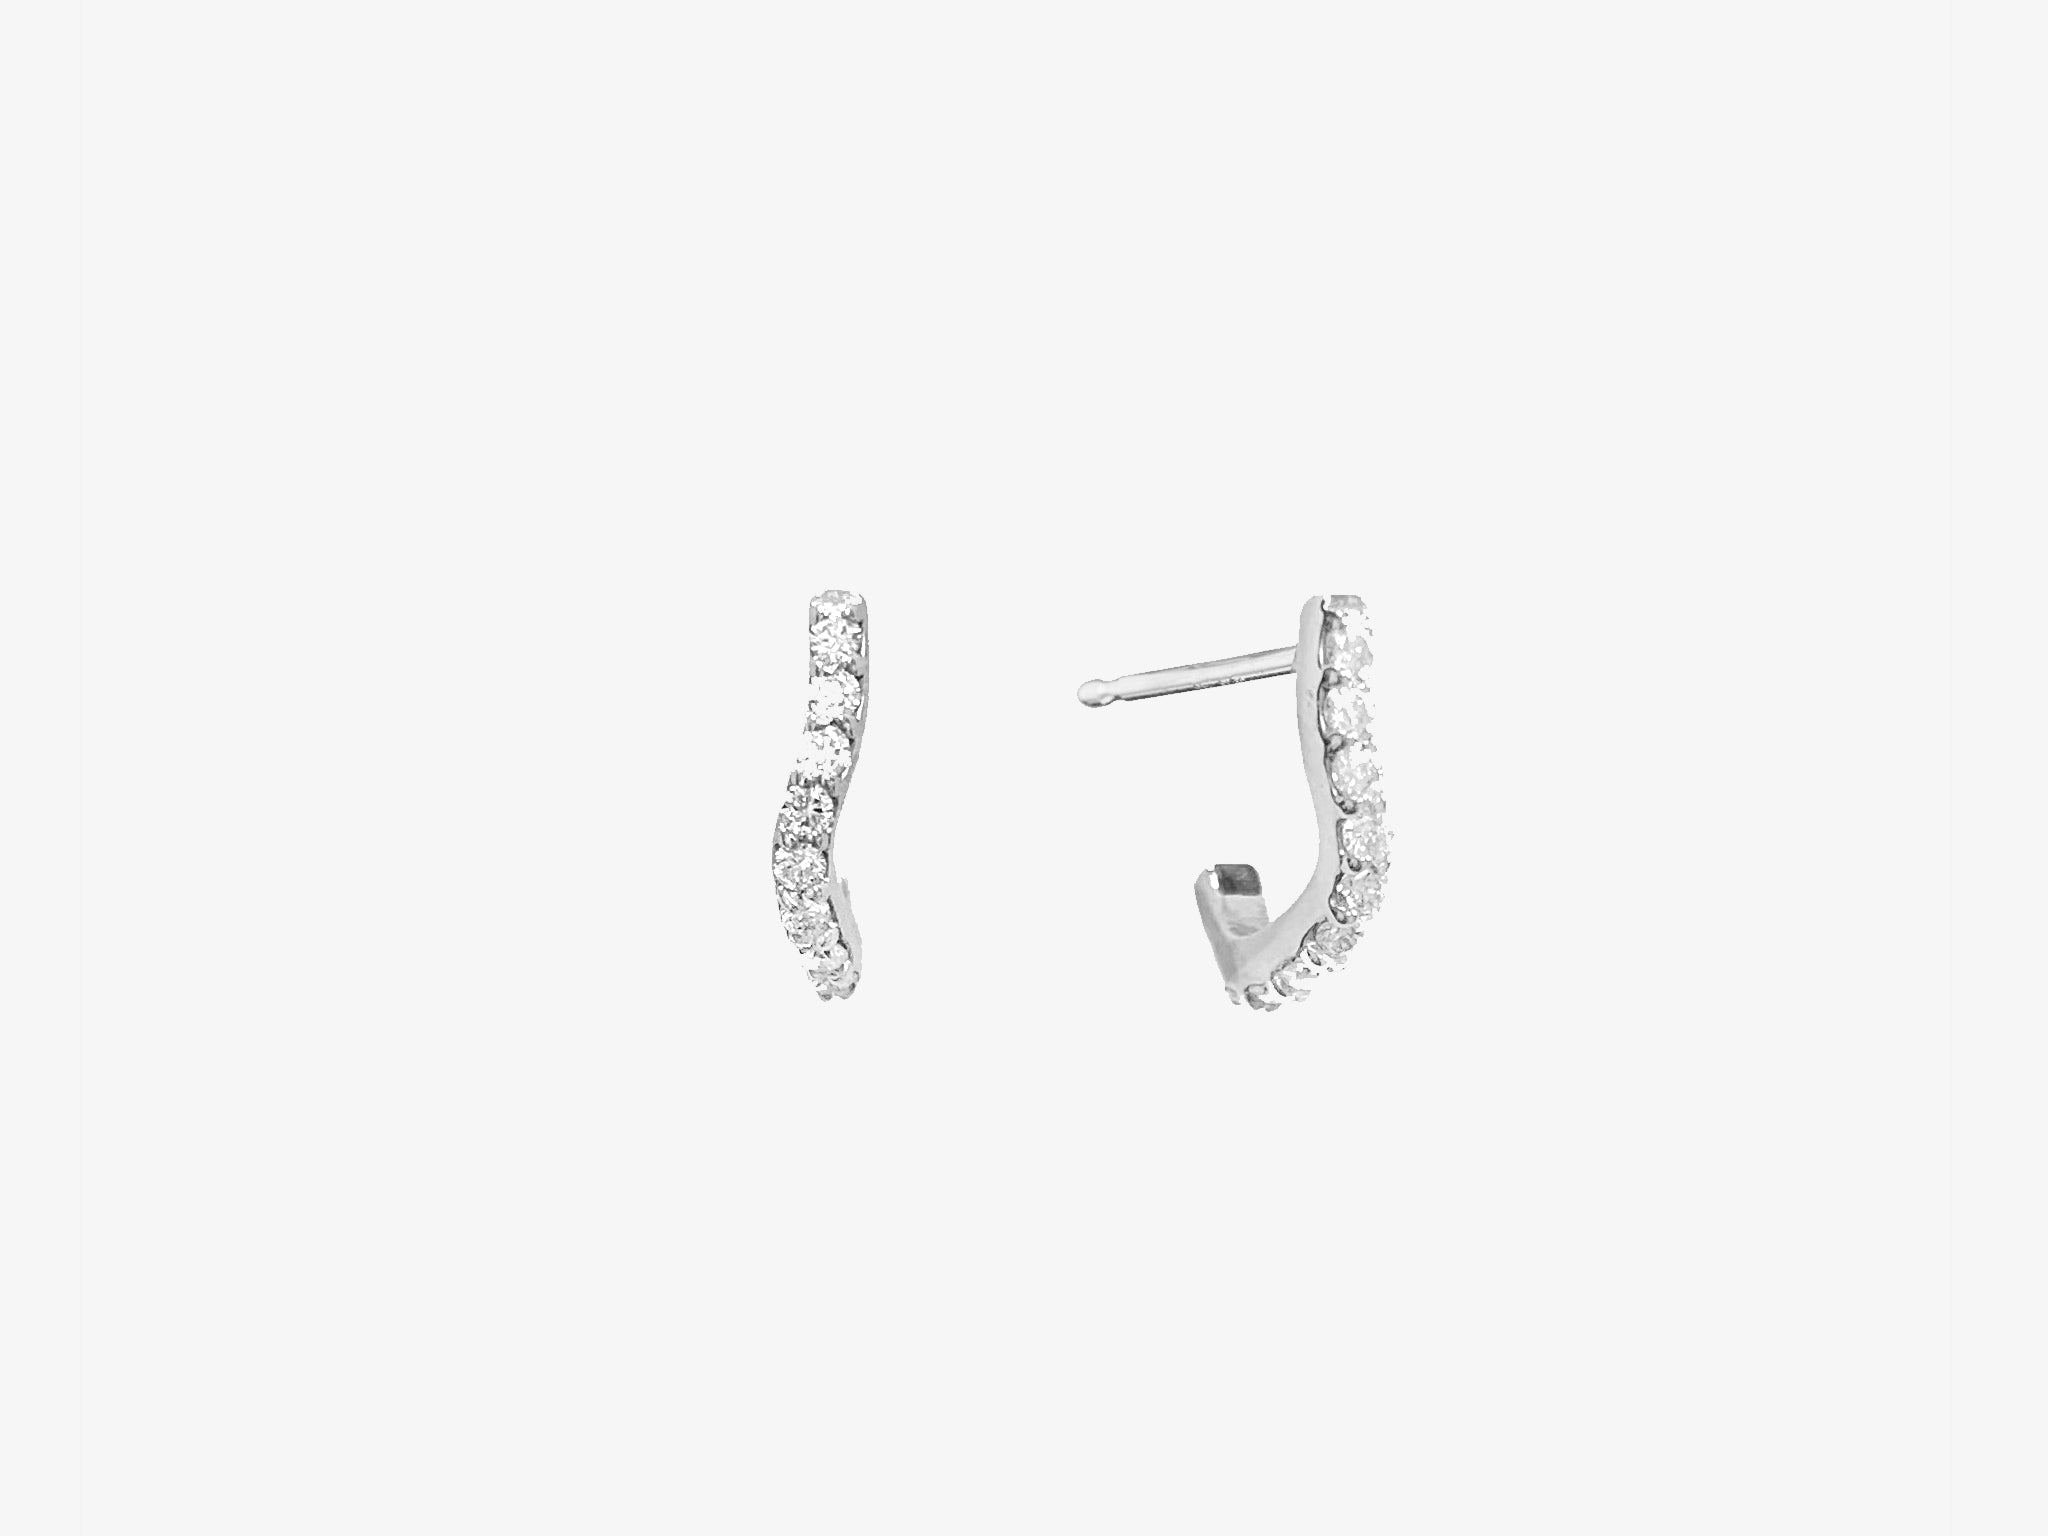 Small Curvy Huggie Earrings with Diamond Pave